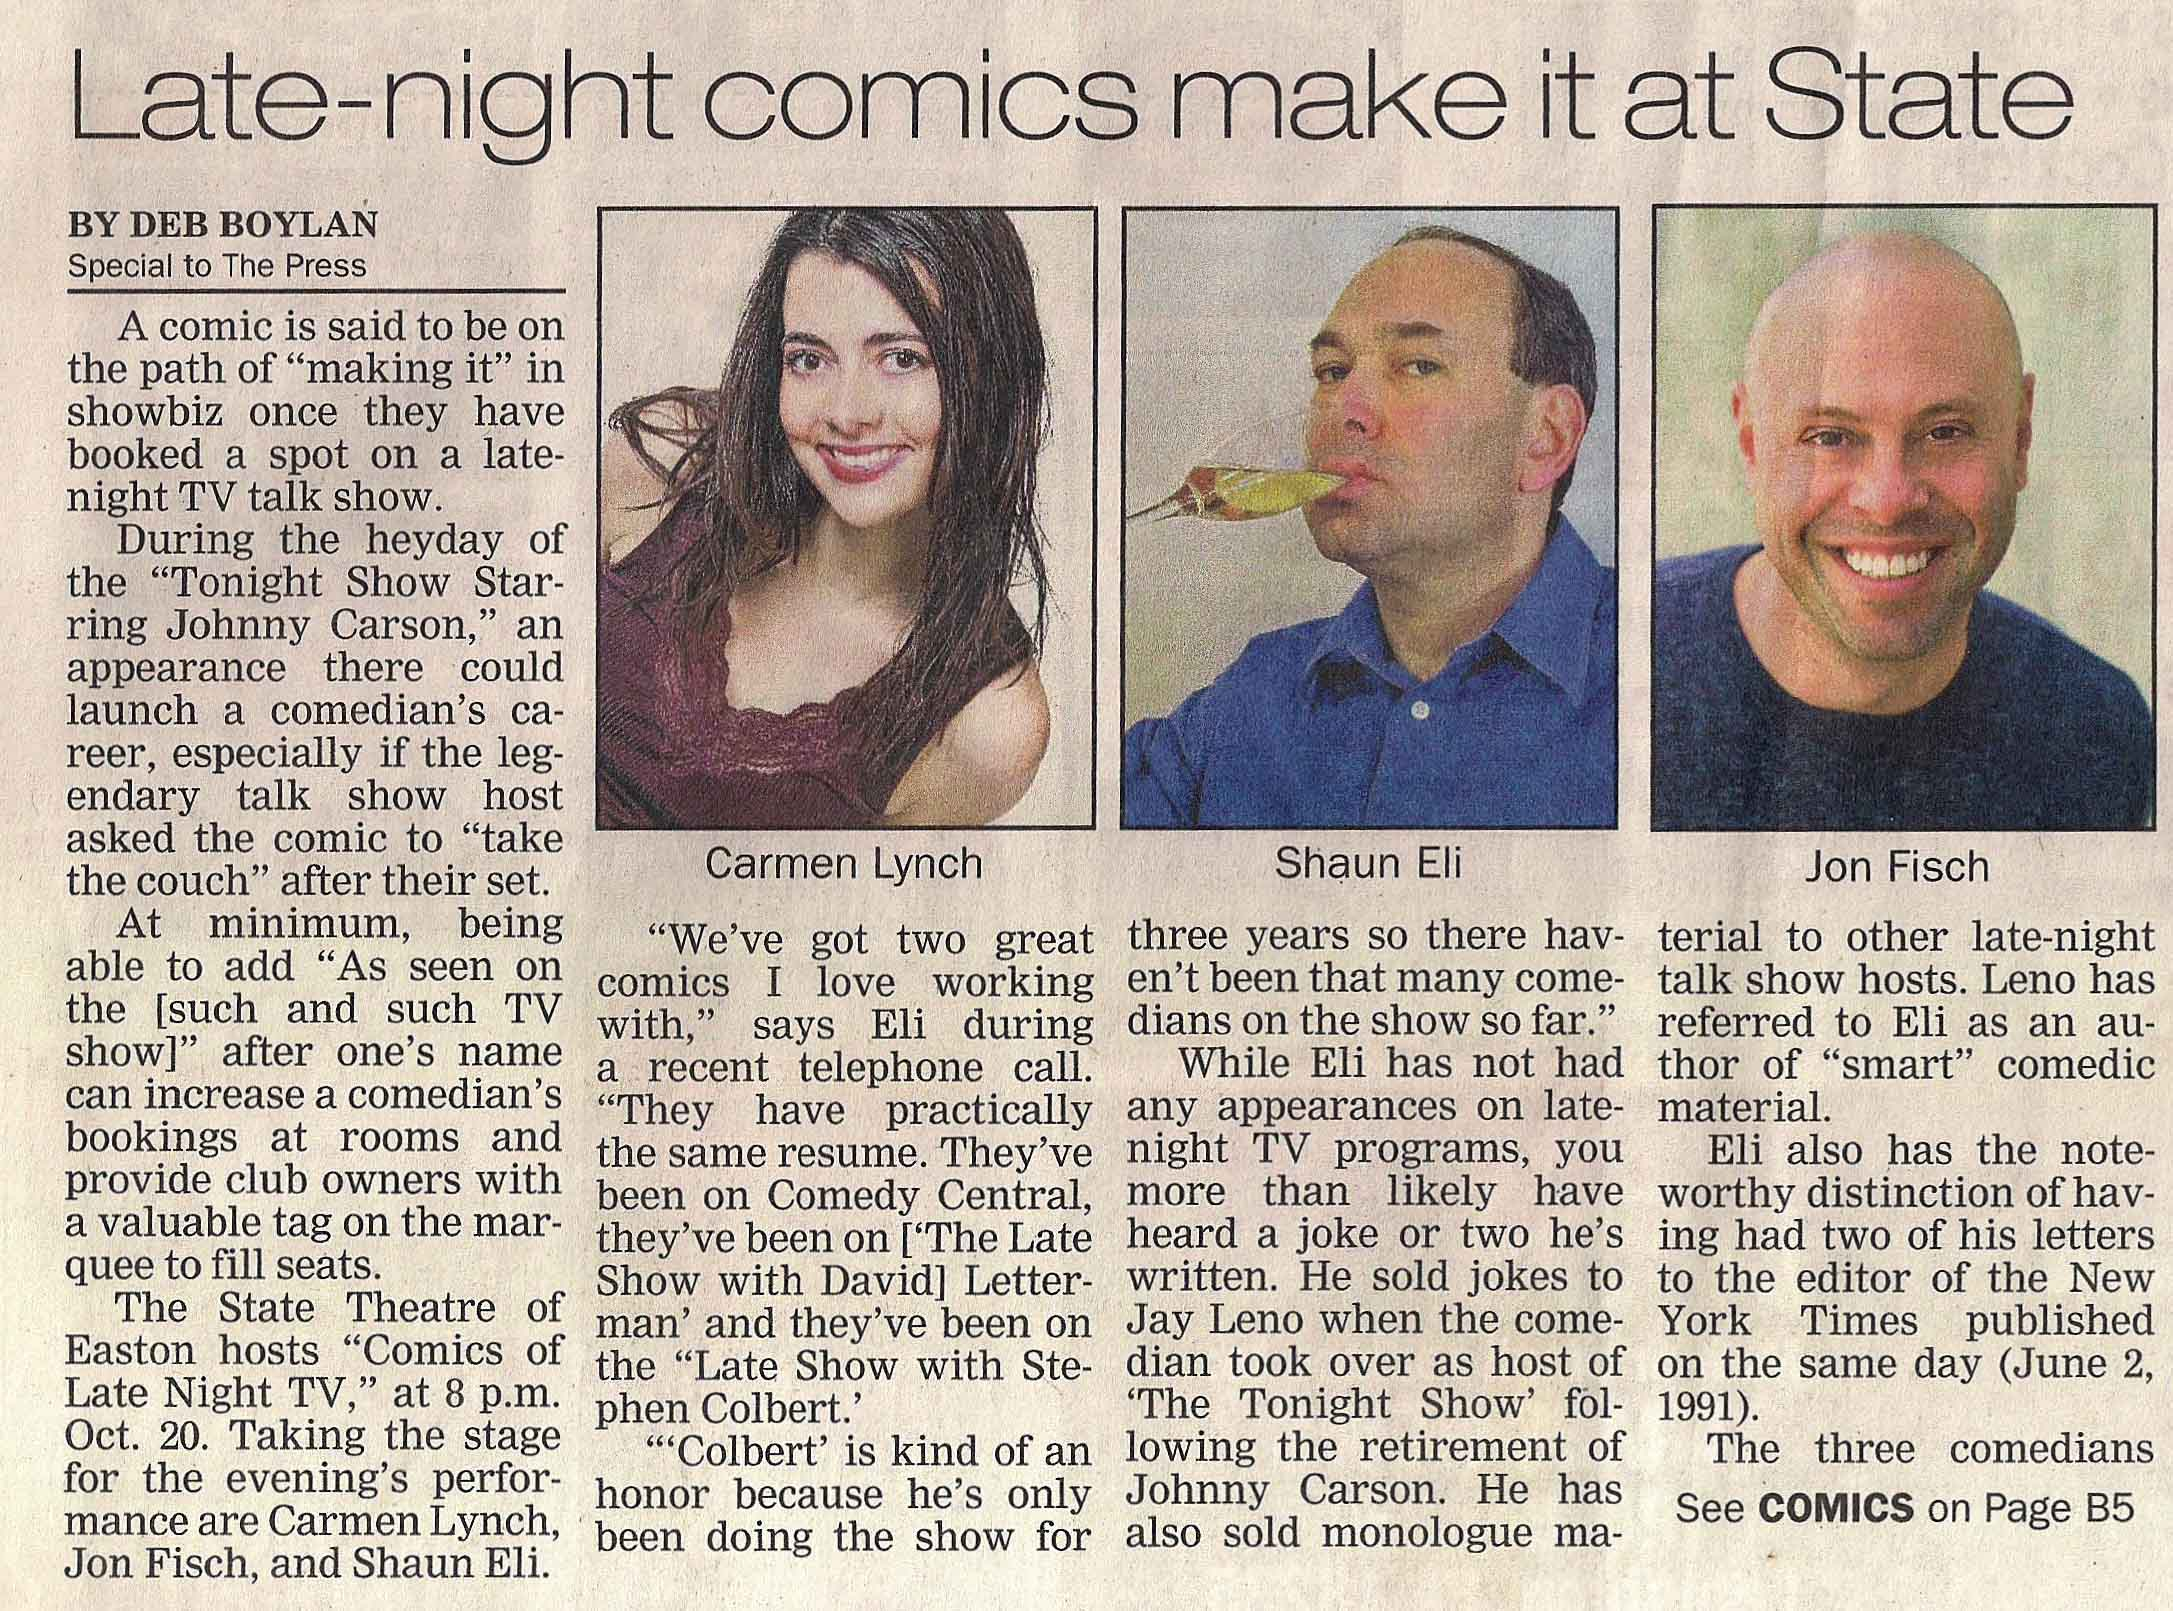 The Ivy League of Comedy in the Lehigh Valley Press, covering them at the State Theatre